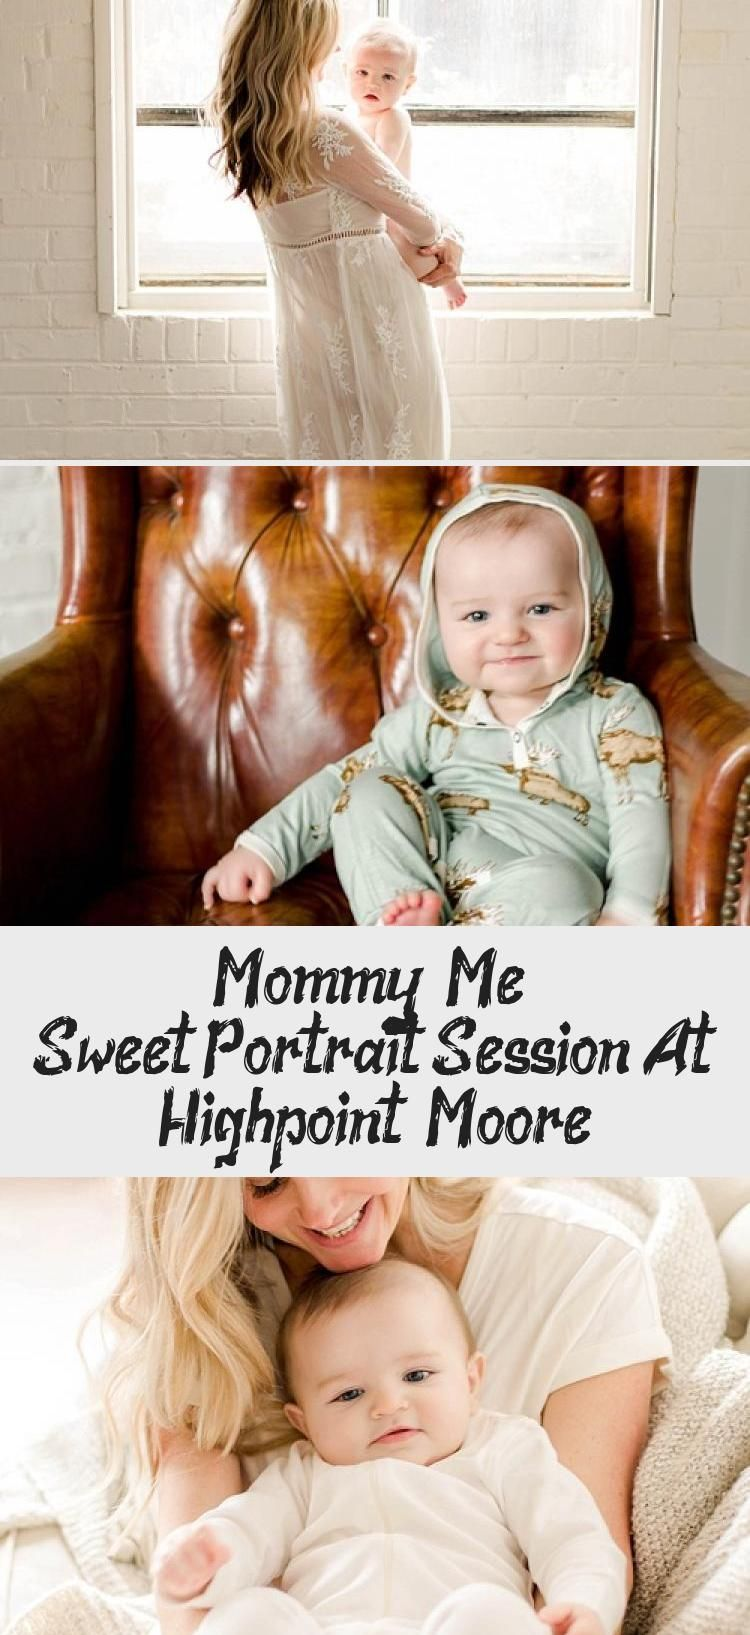 Mommy & Me! Sweet Portrait Session At Highpoint & Moore